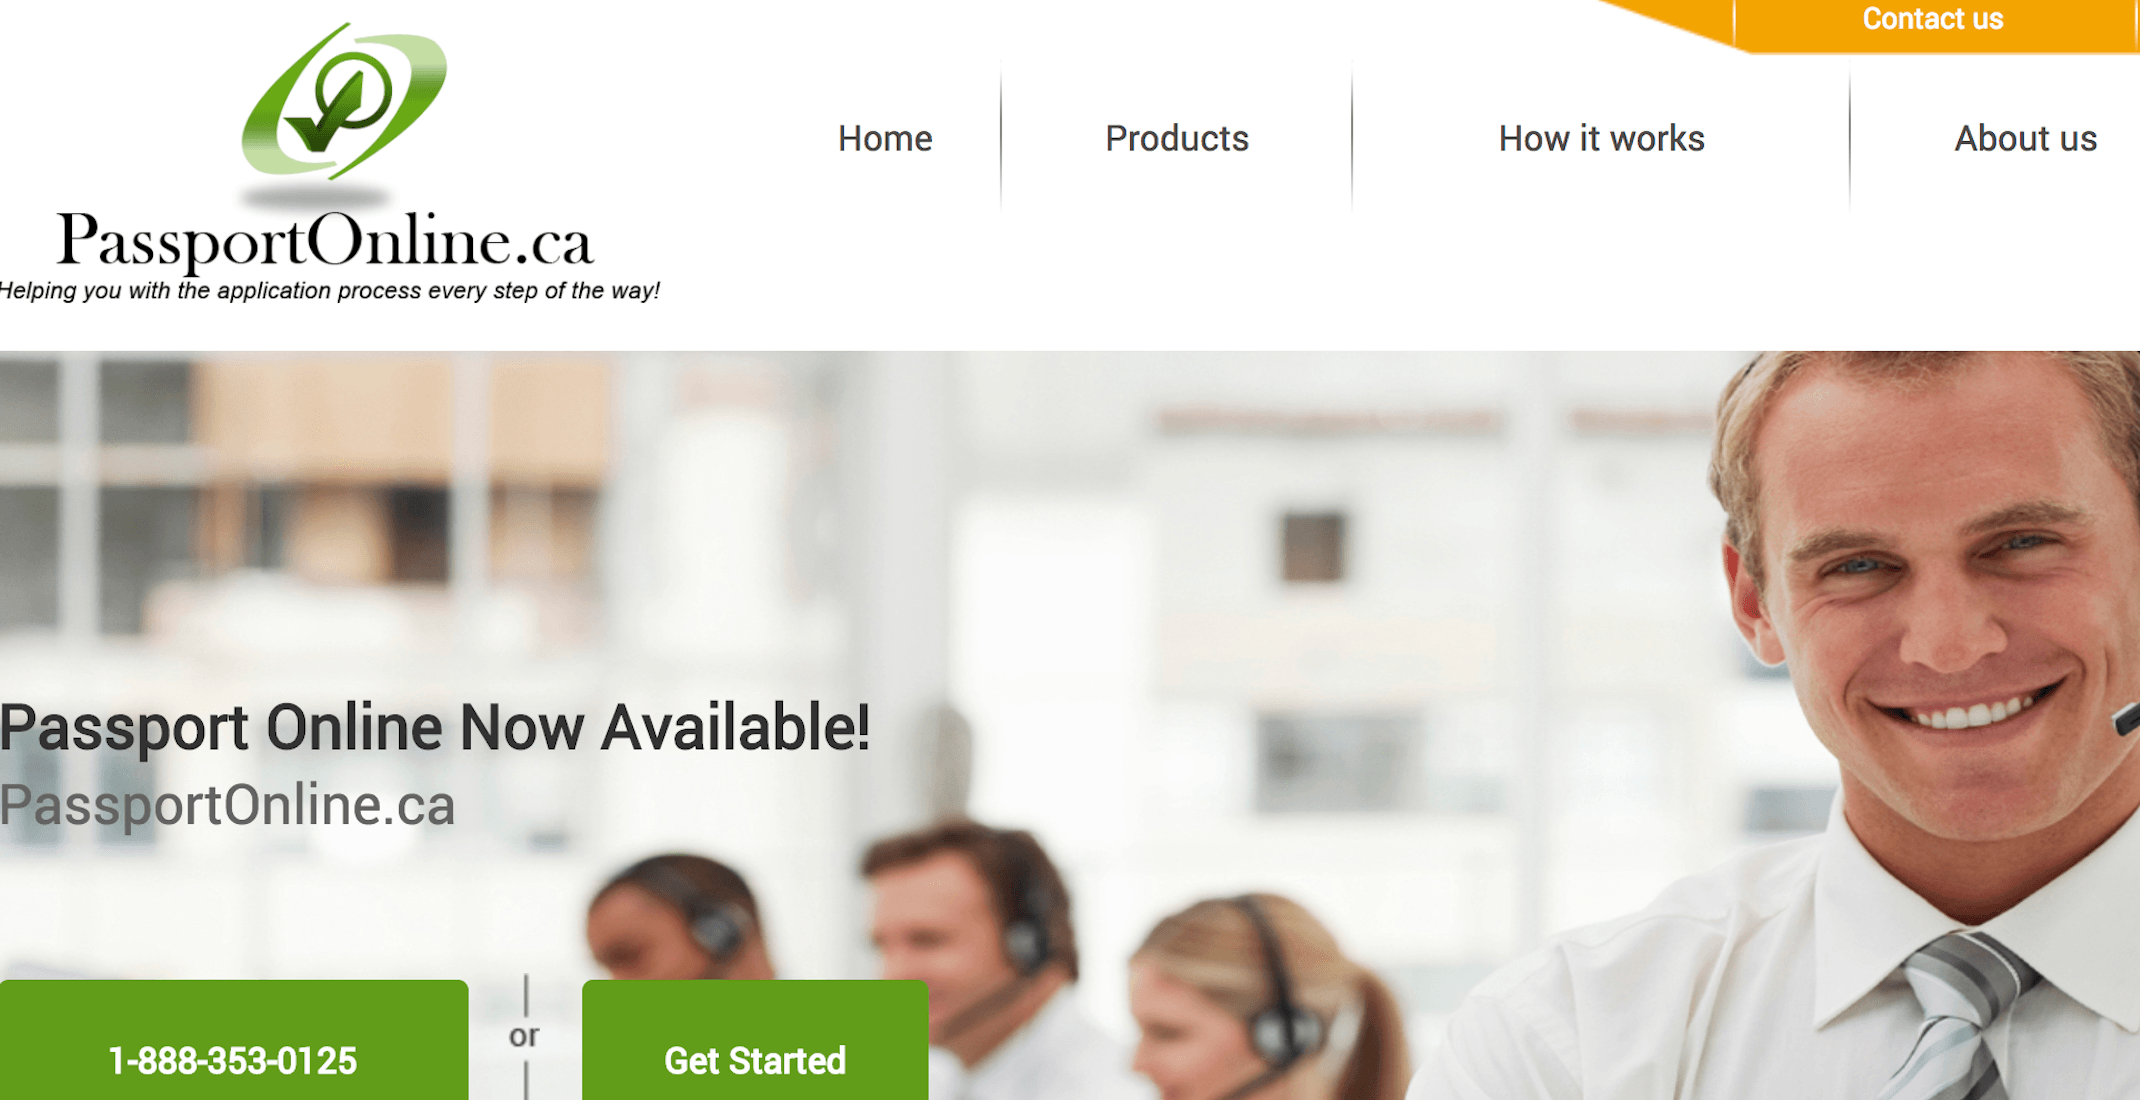 This fraudulent website says it will help you get a Canadian Passport online